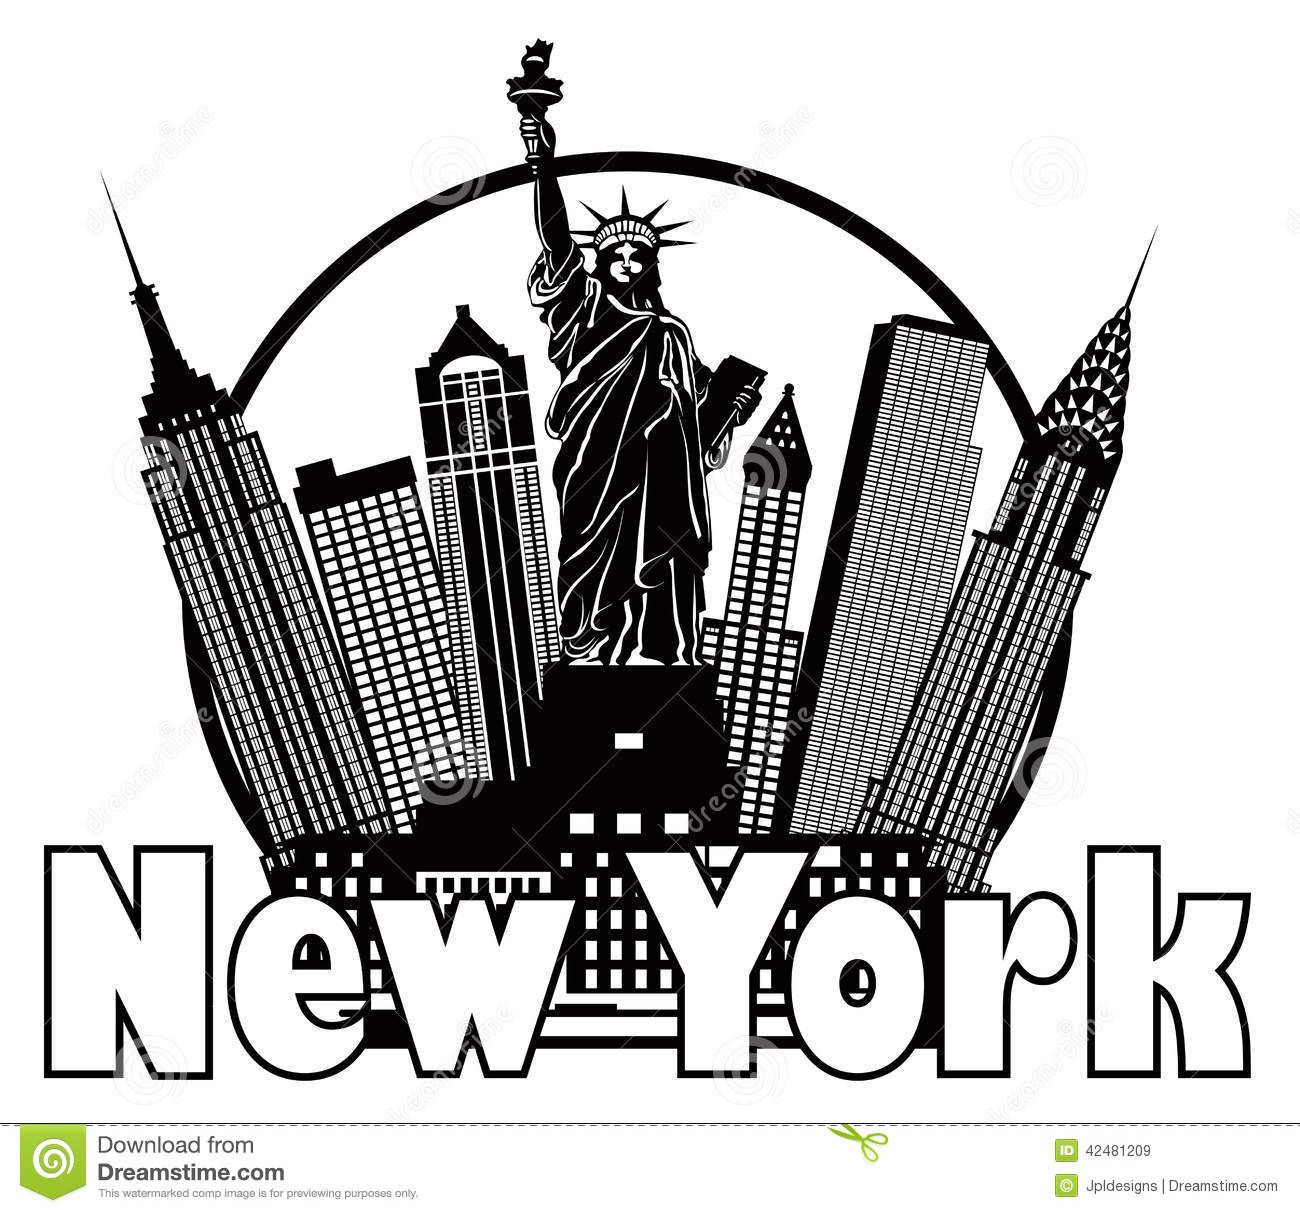 new york city clipart skyline - photo #43